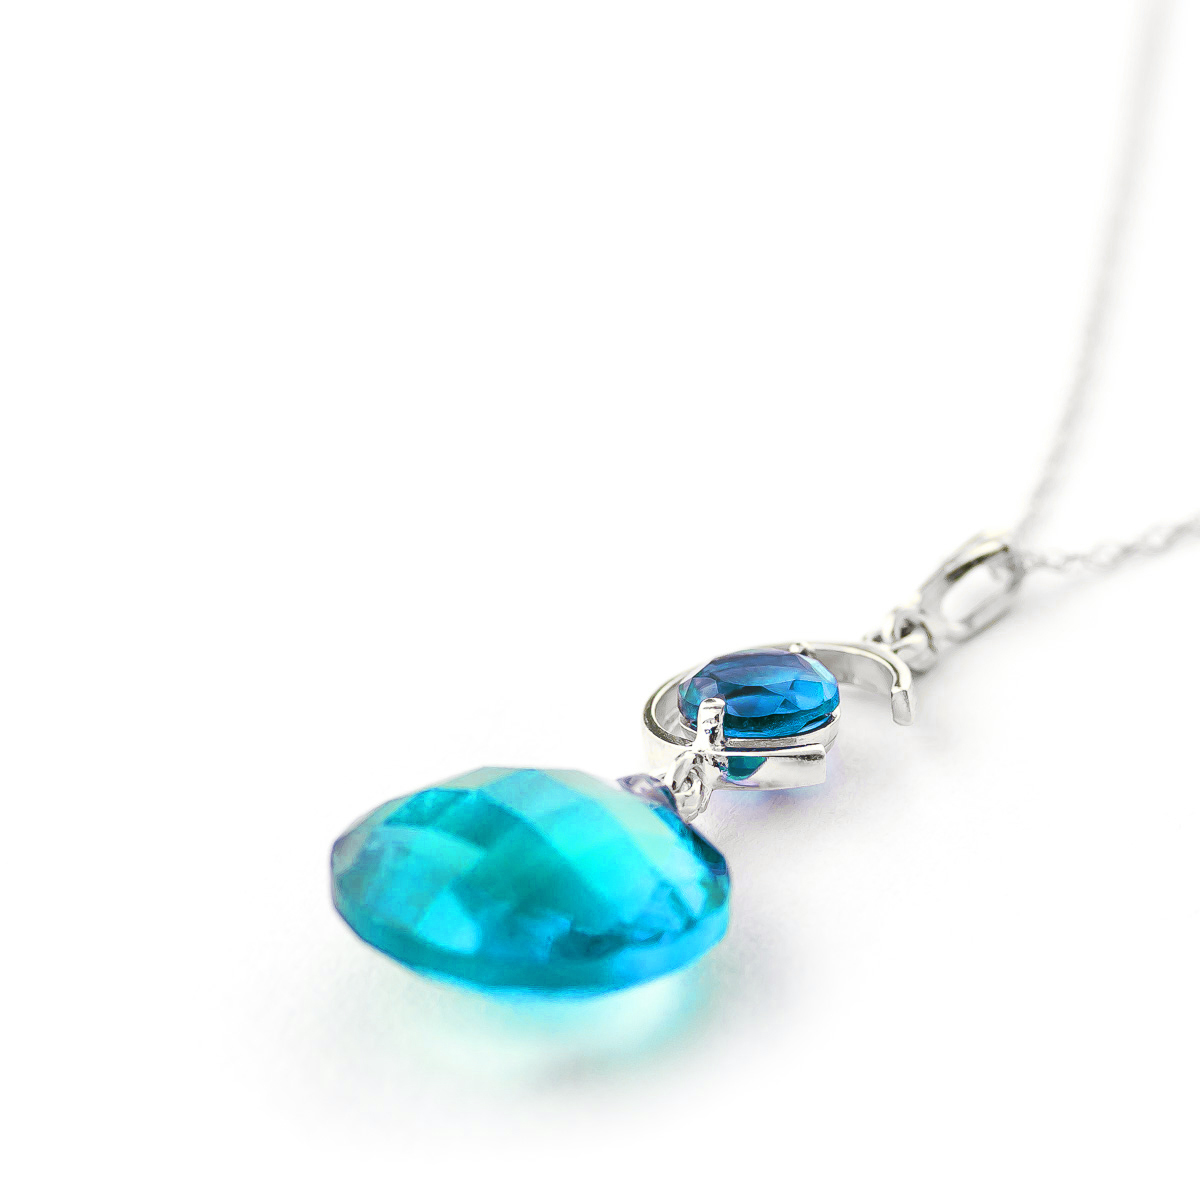 Round Cut Blue Topaz Pendant Necklace 5.8 ctw in 9ct White Gold